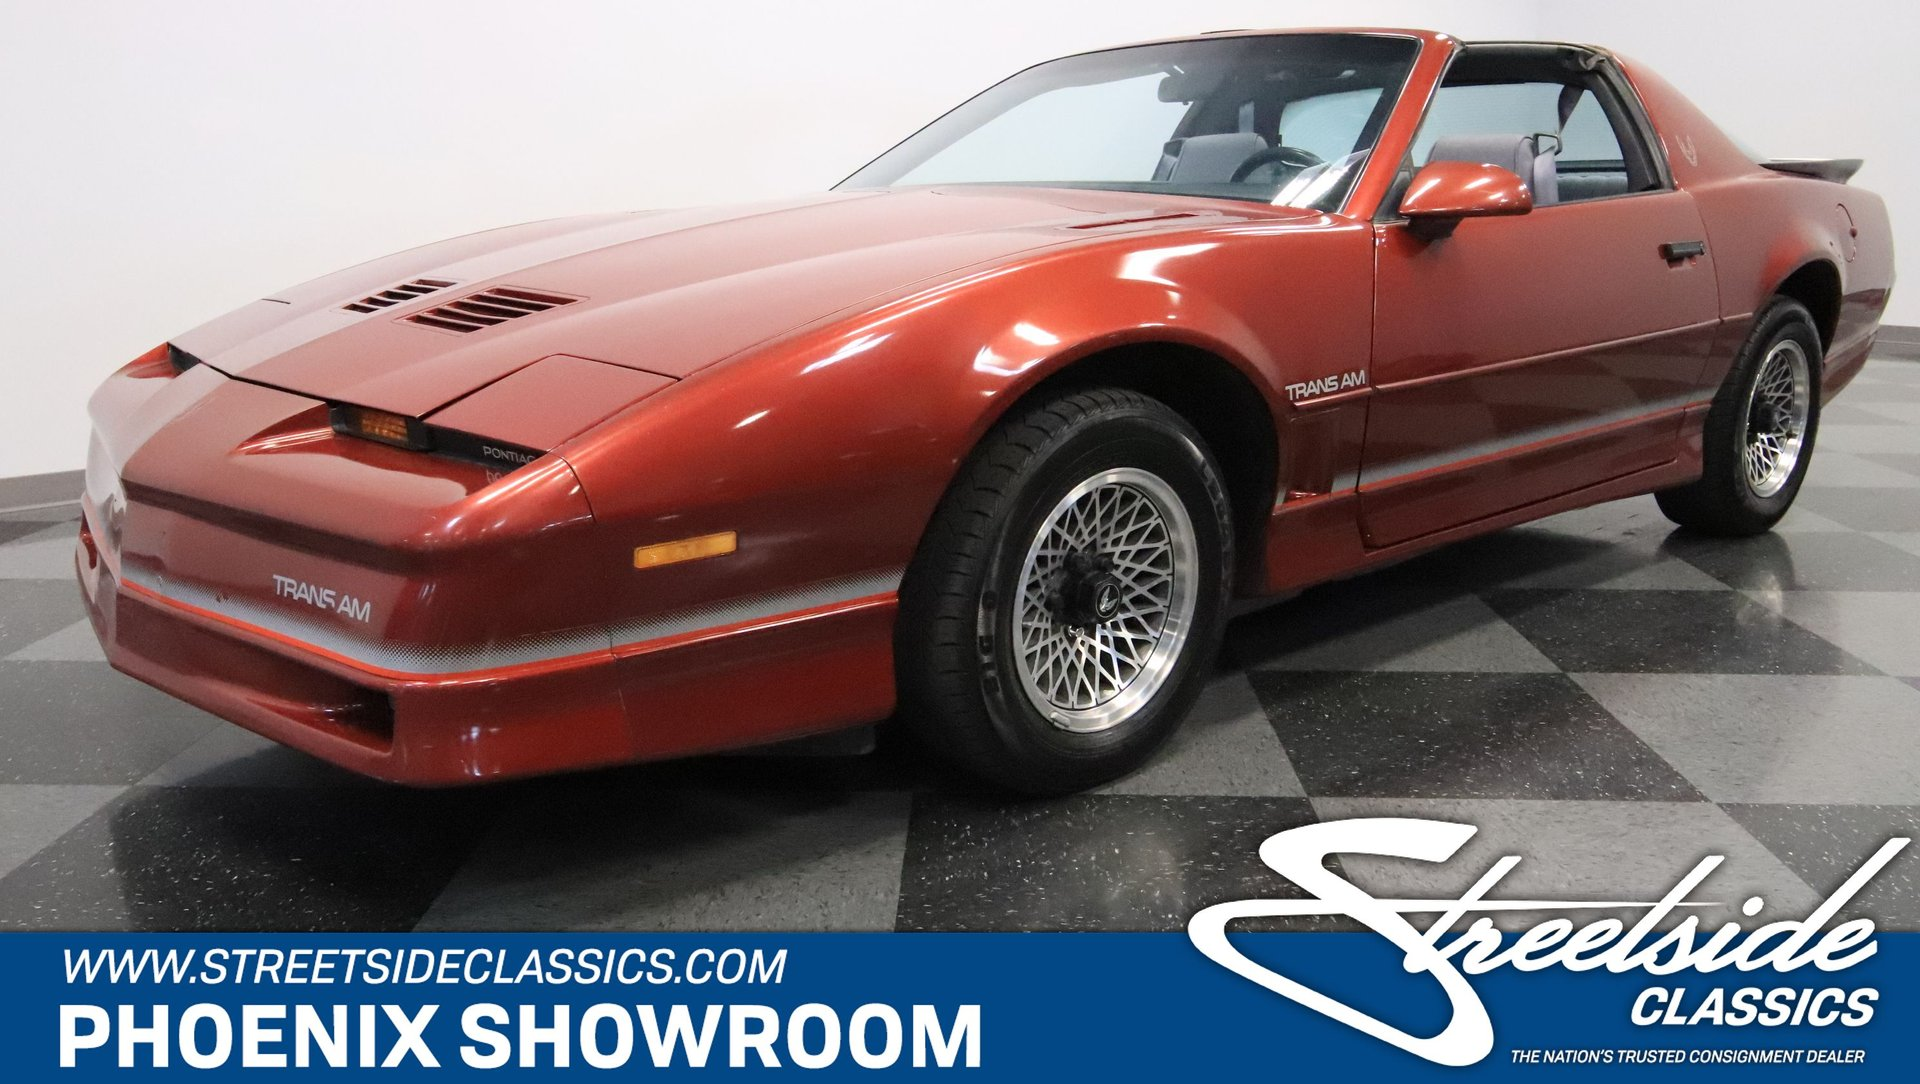 1986 Pontiac Firebird Classic Cars For Sale Streetside Classics The Nation S 1 Consignment Dealer